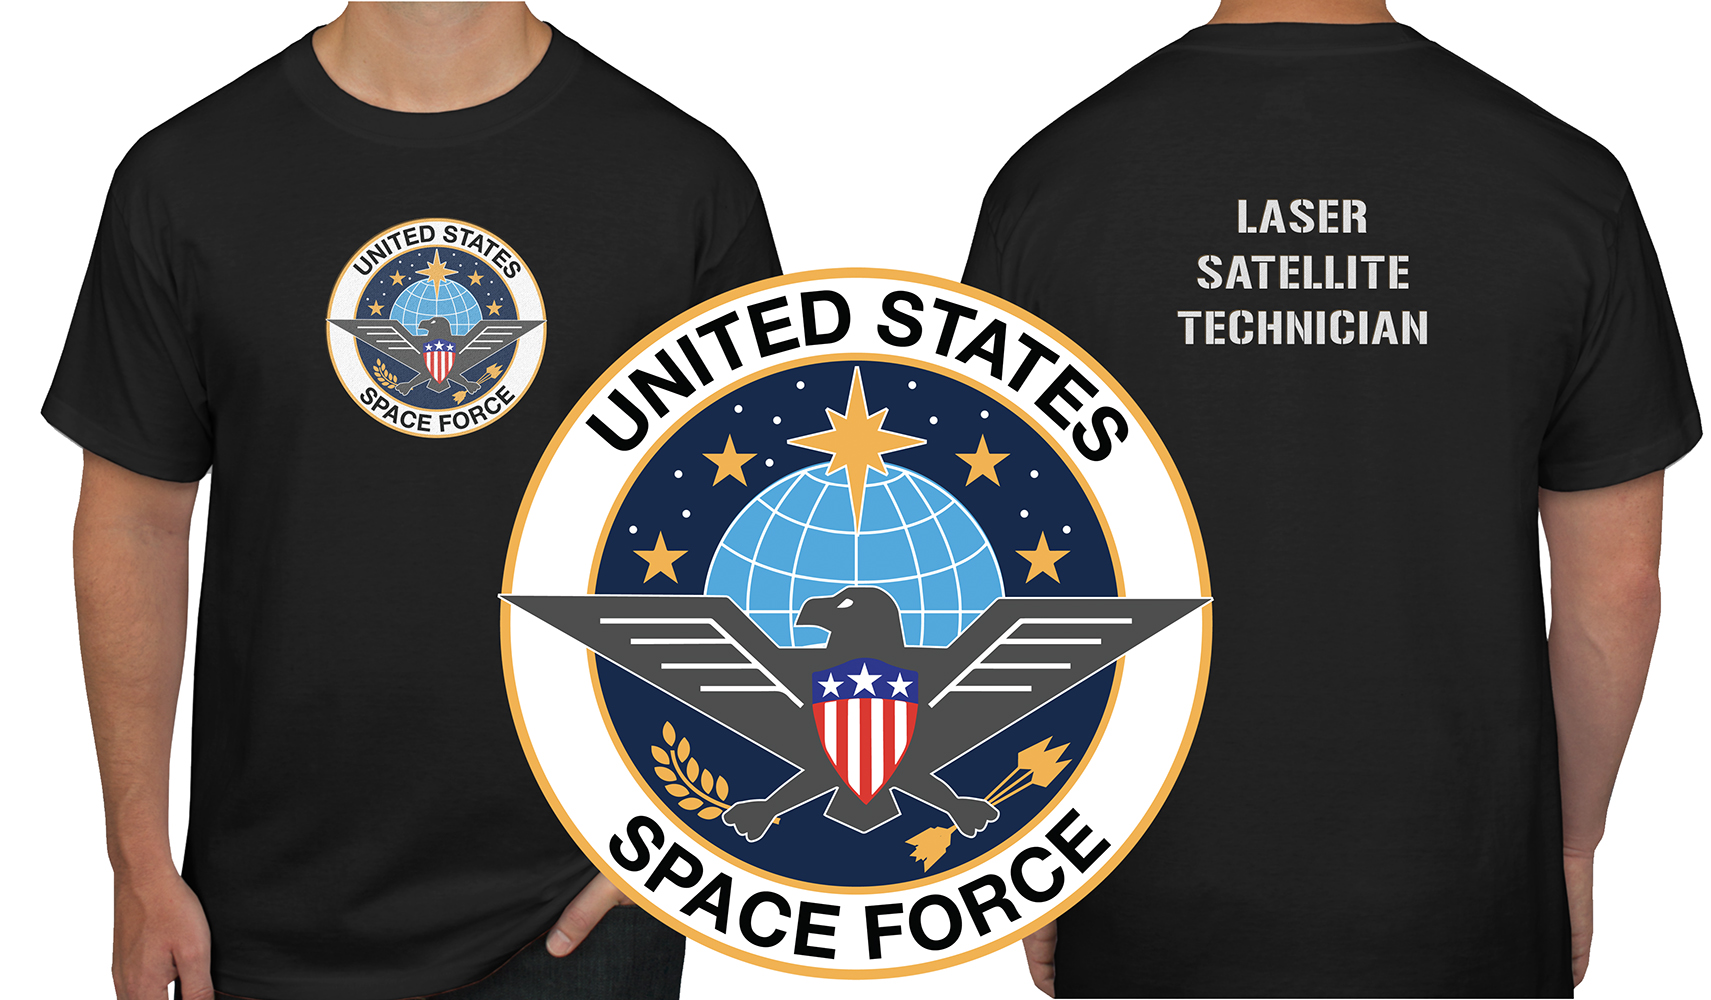 Laser Satellite Technician